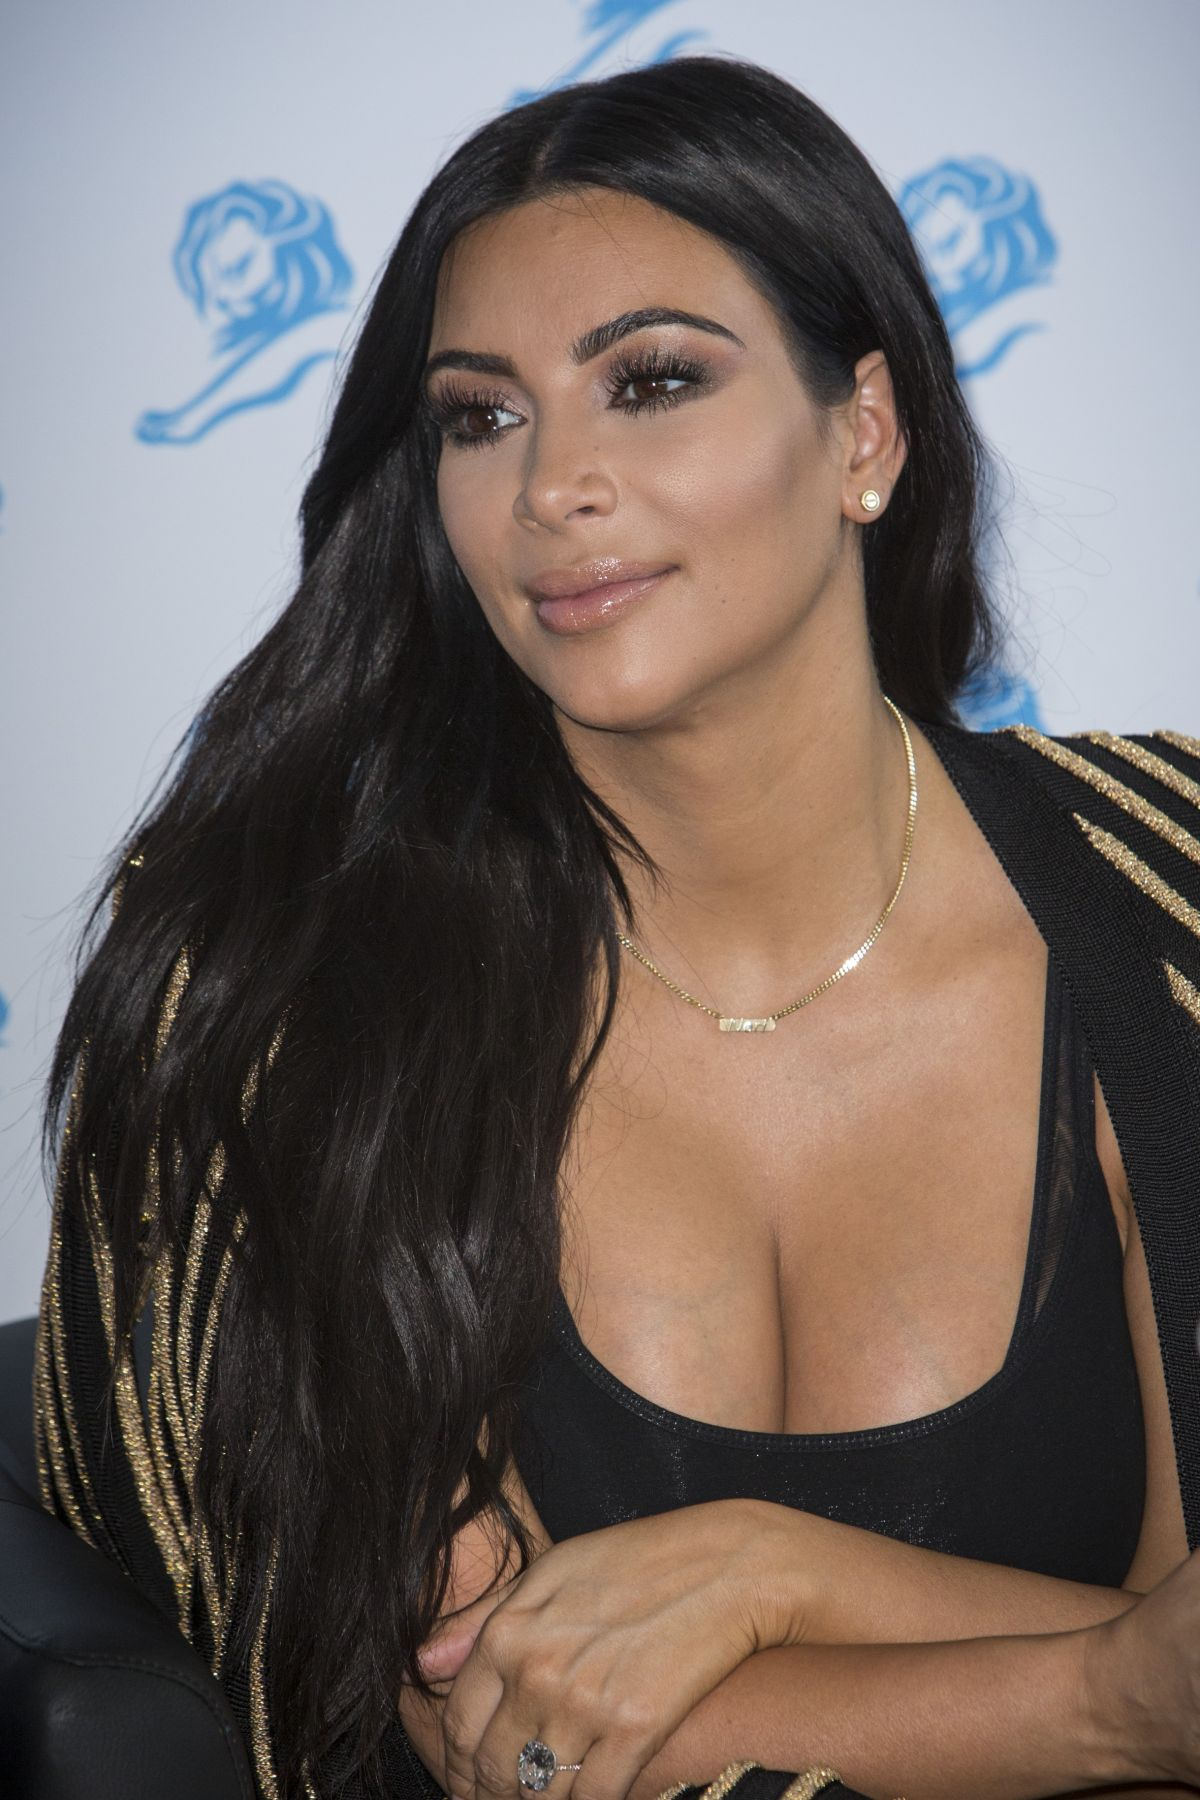 kim kardashian - photo #11